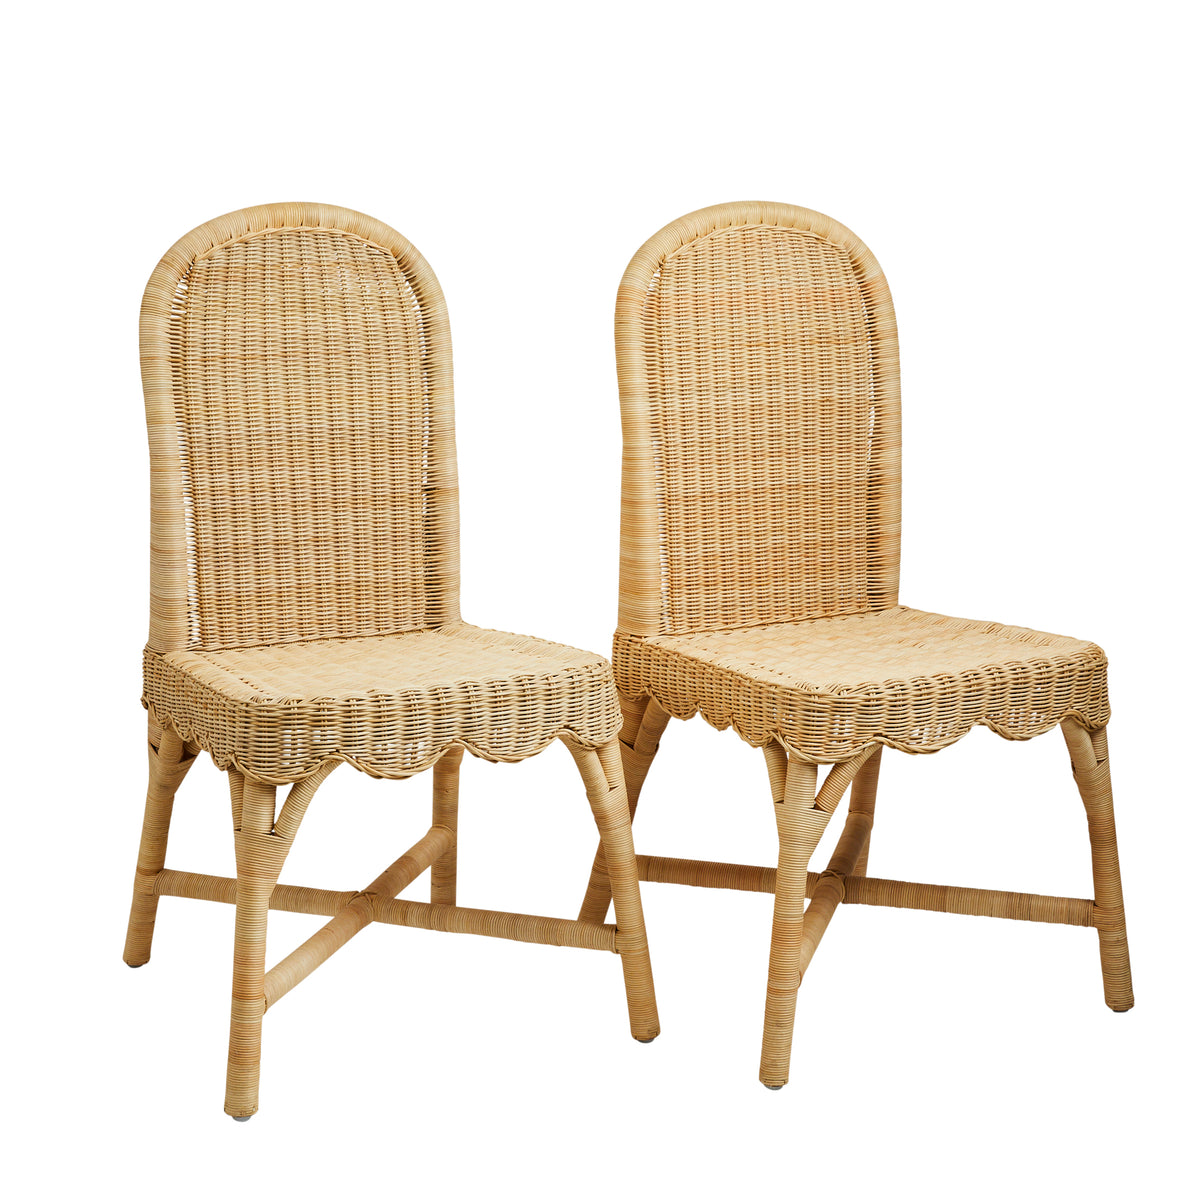 Linton Scalloped Side Chair, Set of 2